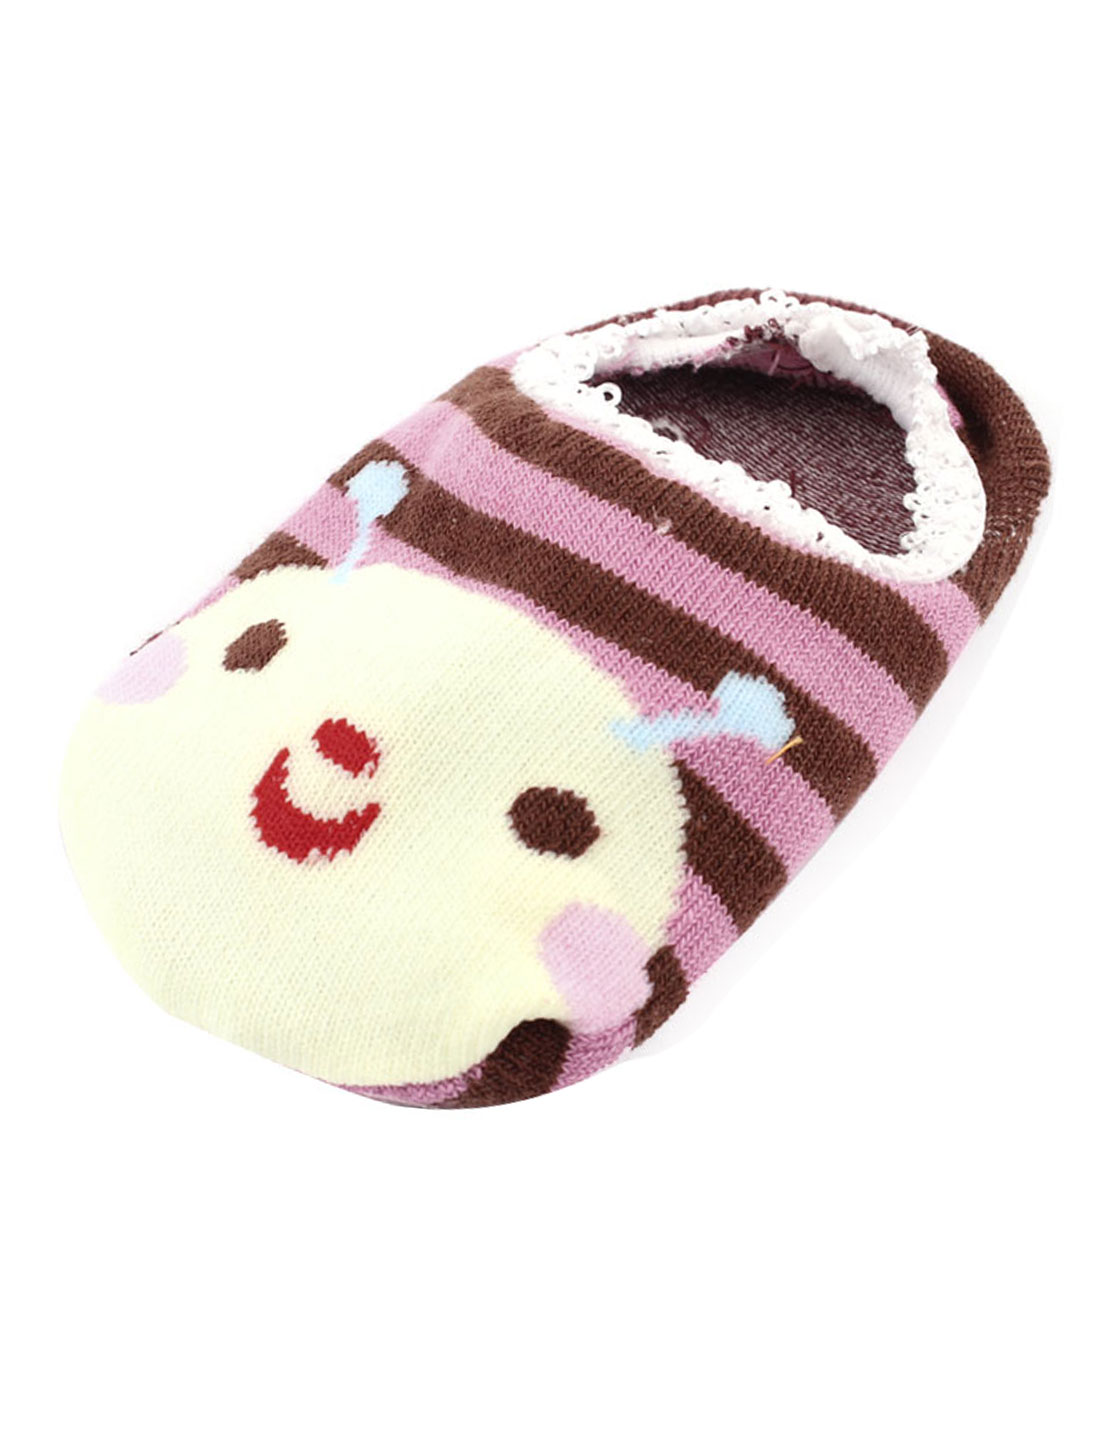 Laciness Cartoon Rabbit Print Baby Toddler Non-Slip Ankle Boat Socks Pink Brown